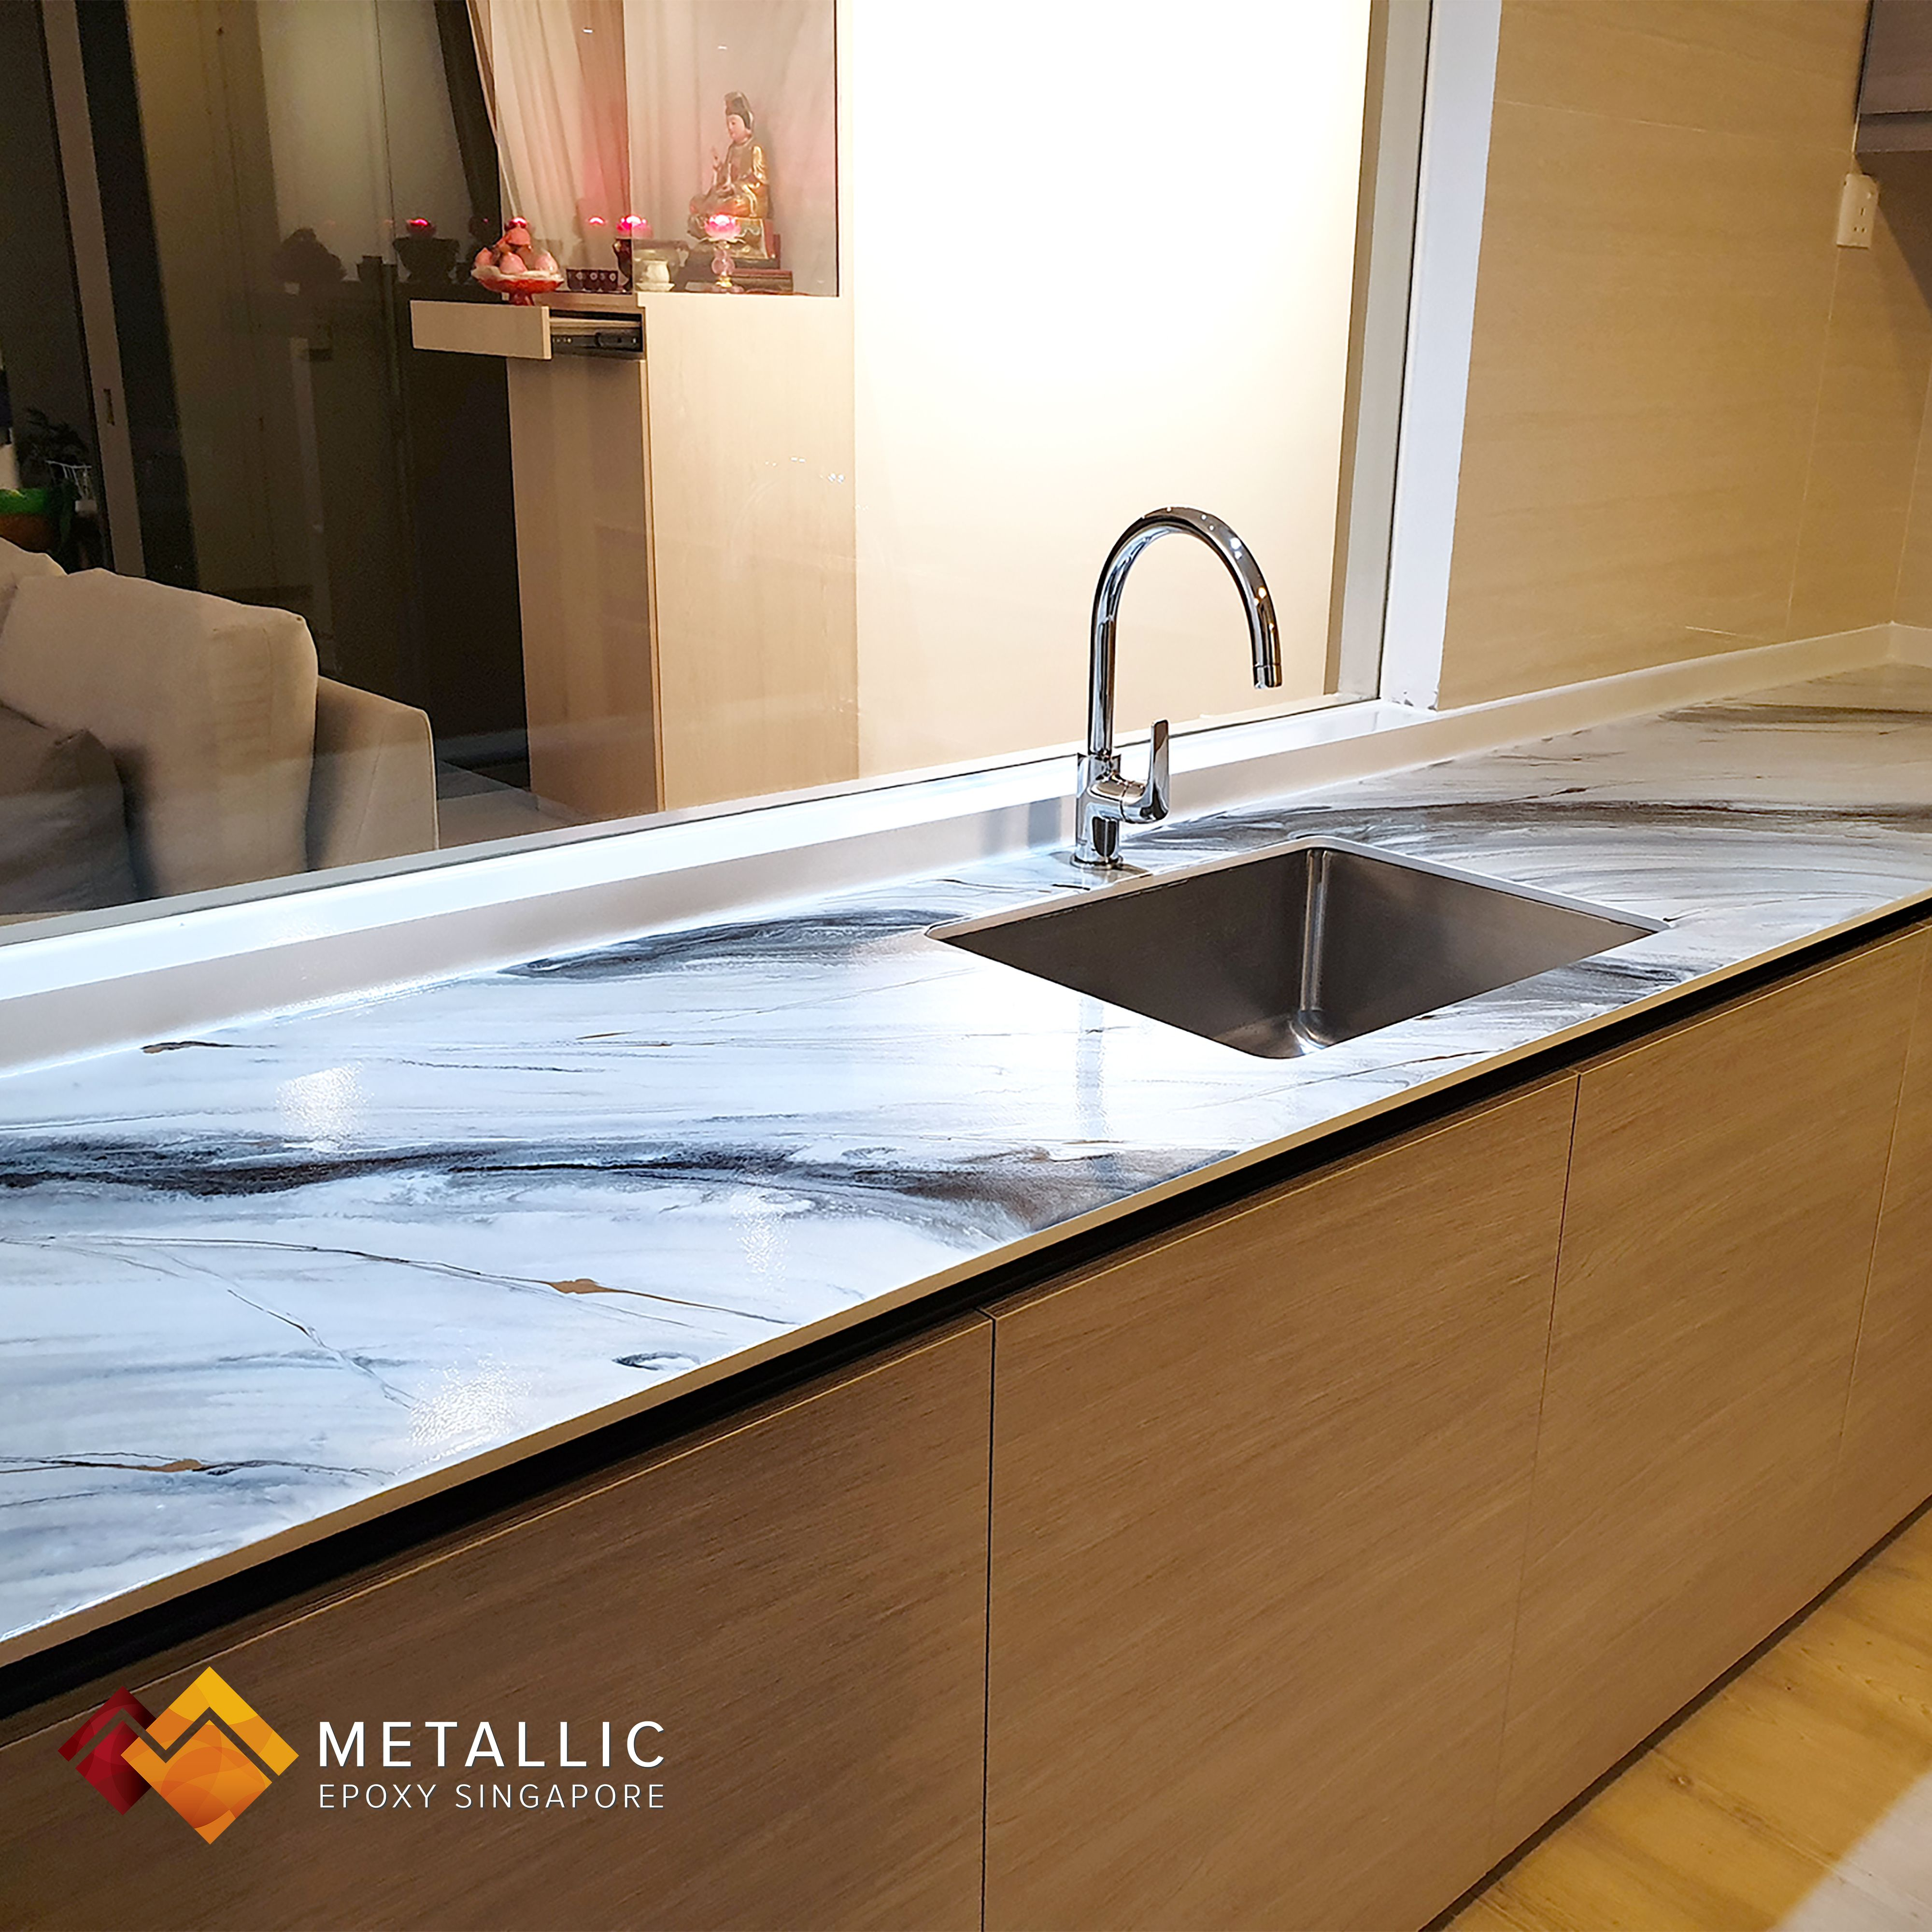 Metallic Black And Olive Green Streaks On This Kitchen Countertop